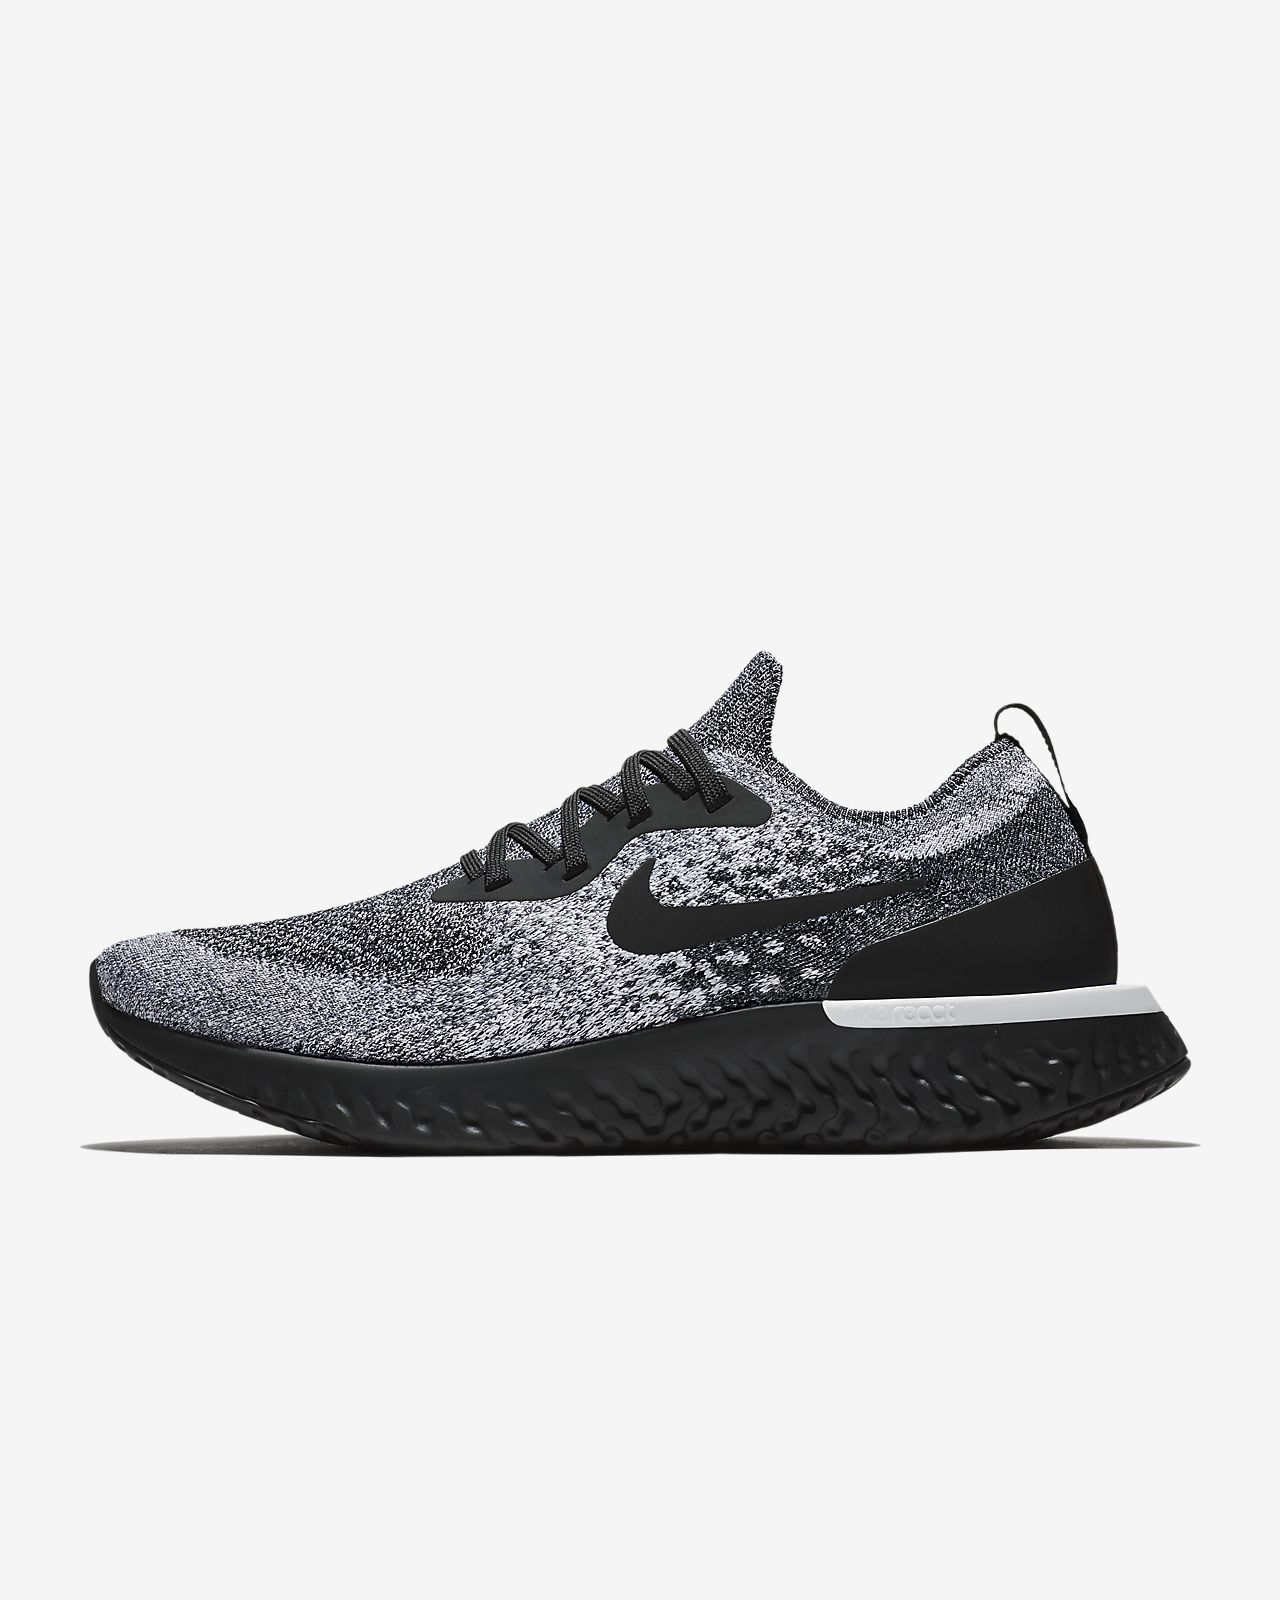 new product f23b2 6a0e3 Men s Running Shoe. Nike Epic React Flyknit